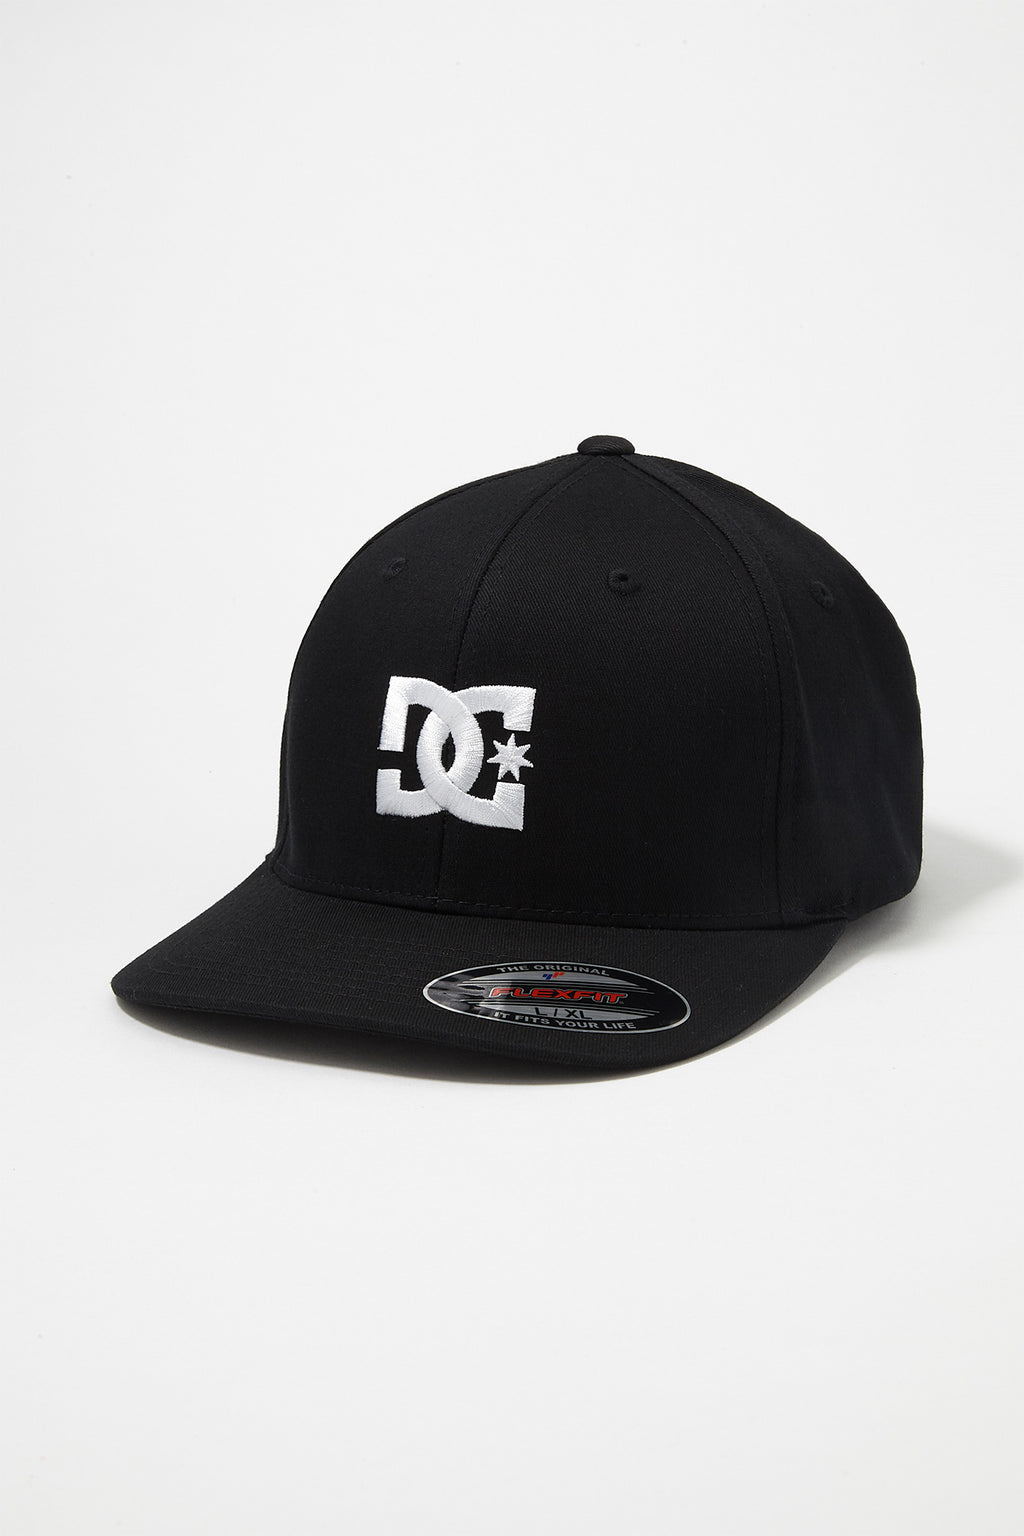 DC Mens Cap Star 2 Flexfit Hat